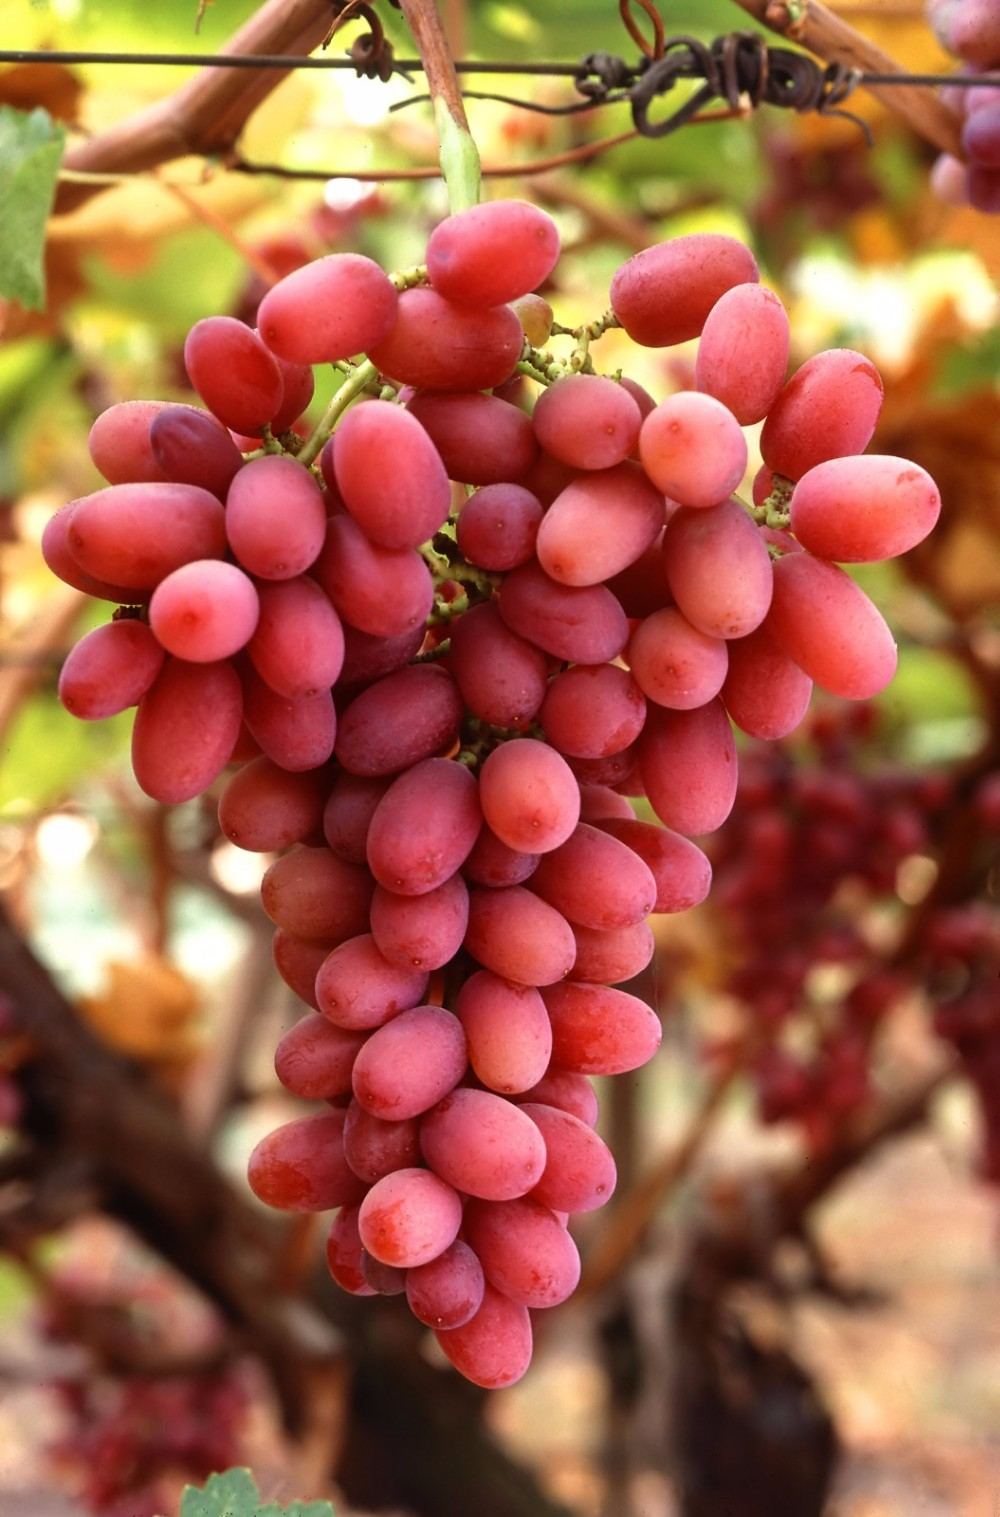 EGYPT FRESH CROPE 2017..red Color and Fresh Style Grapes seedless grapes